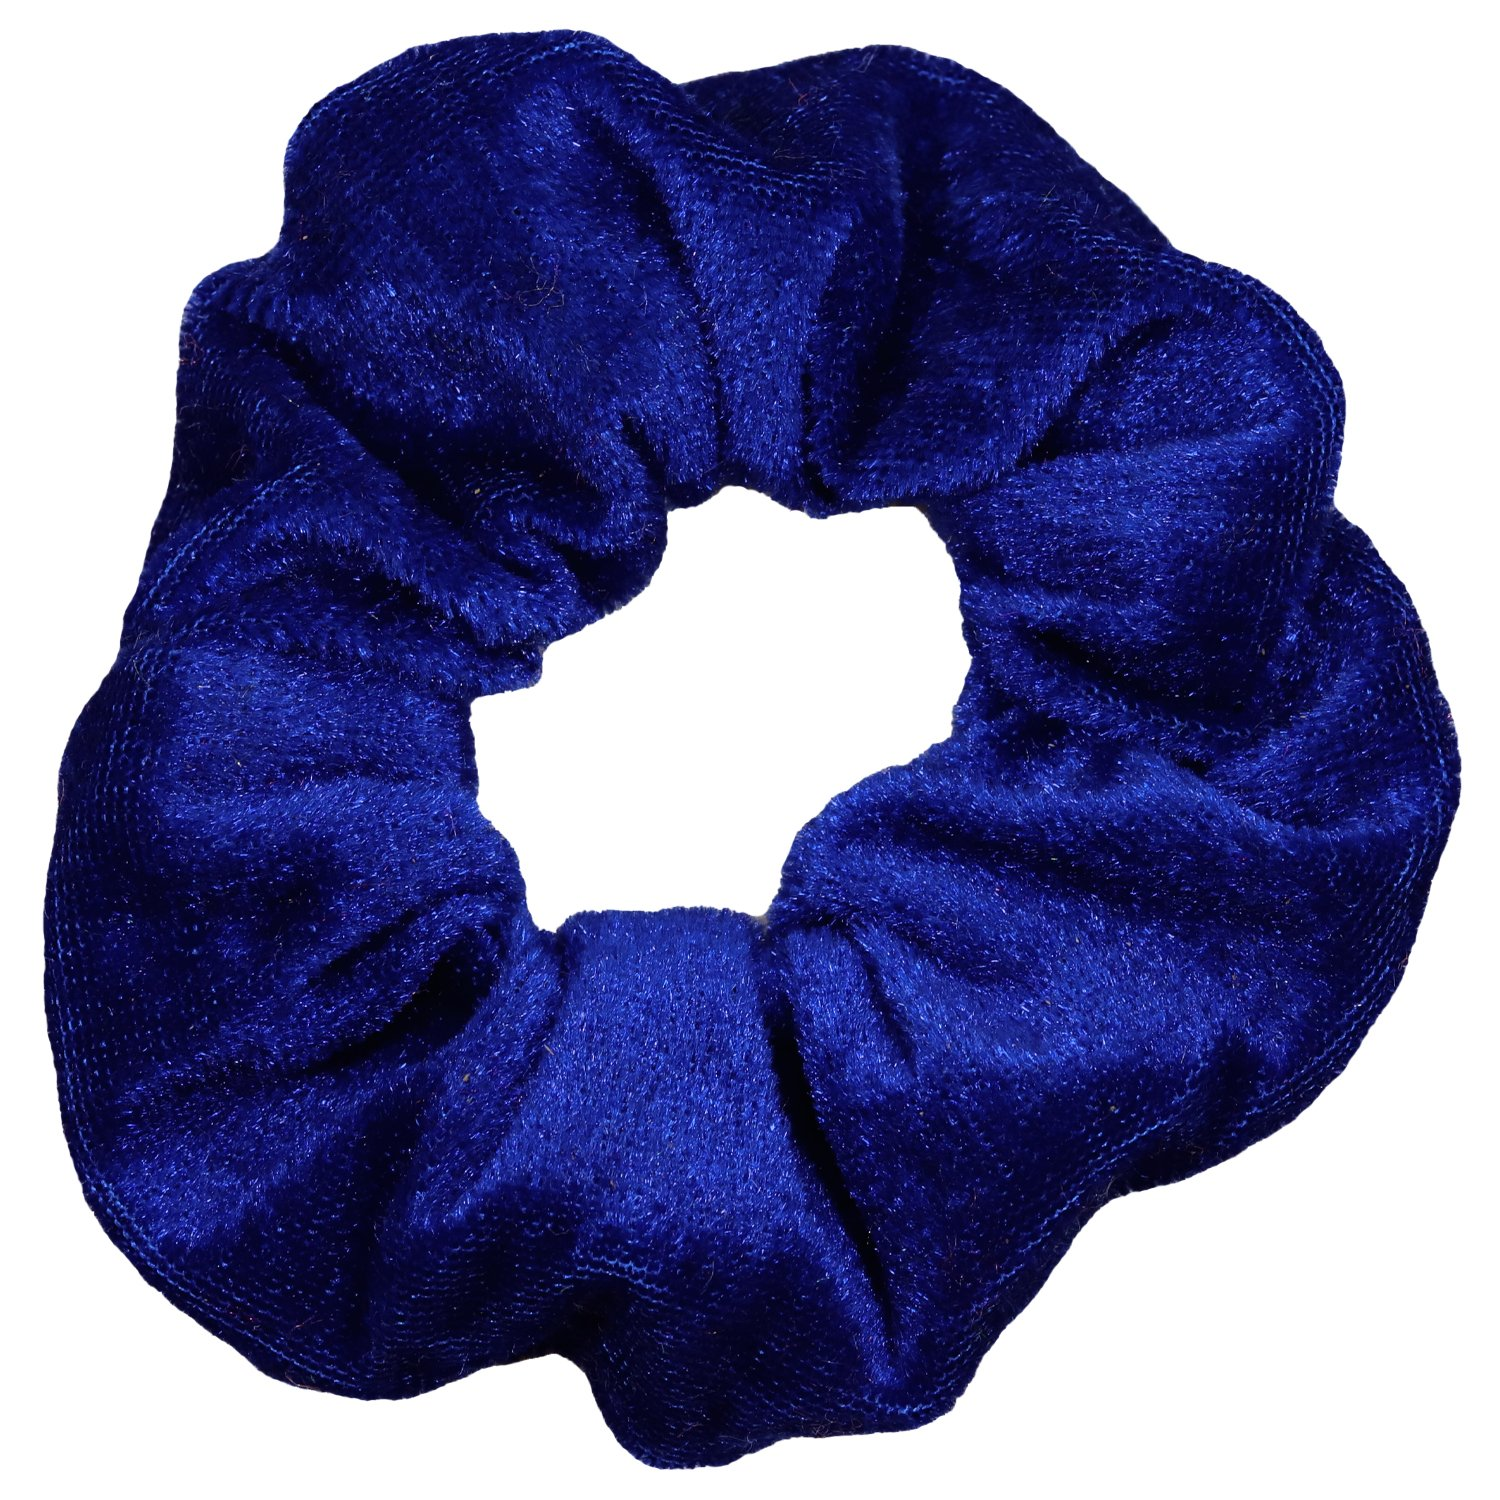 Velvet scrunchie clipart clipart images gallery for free.